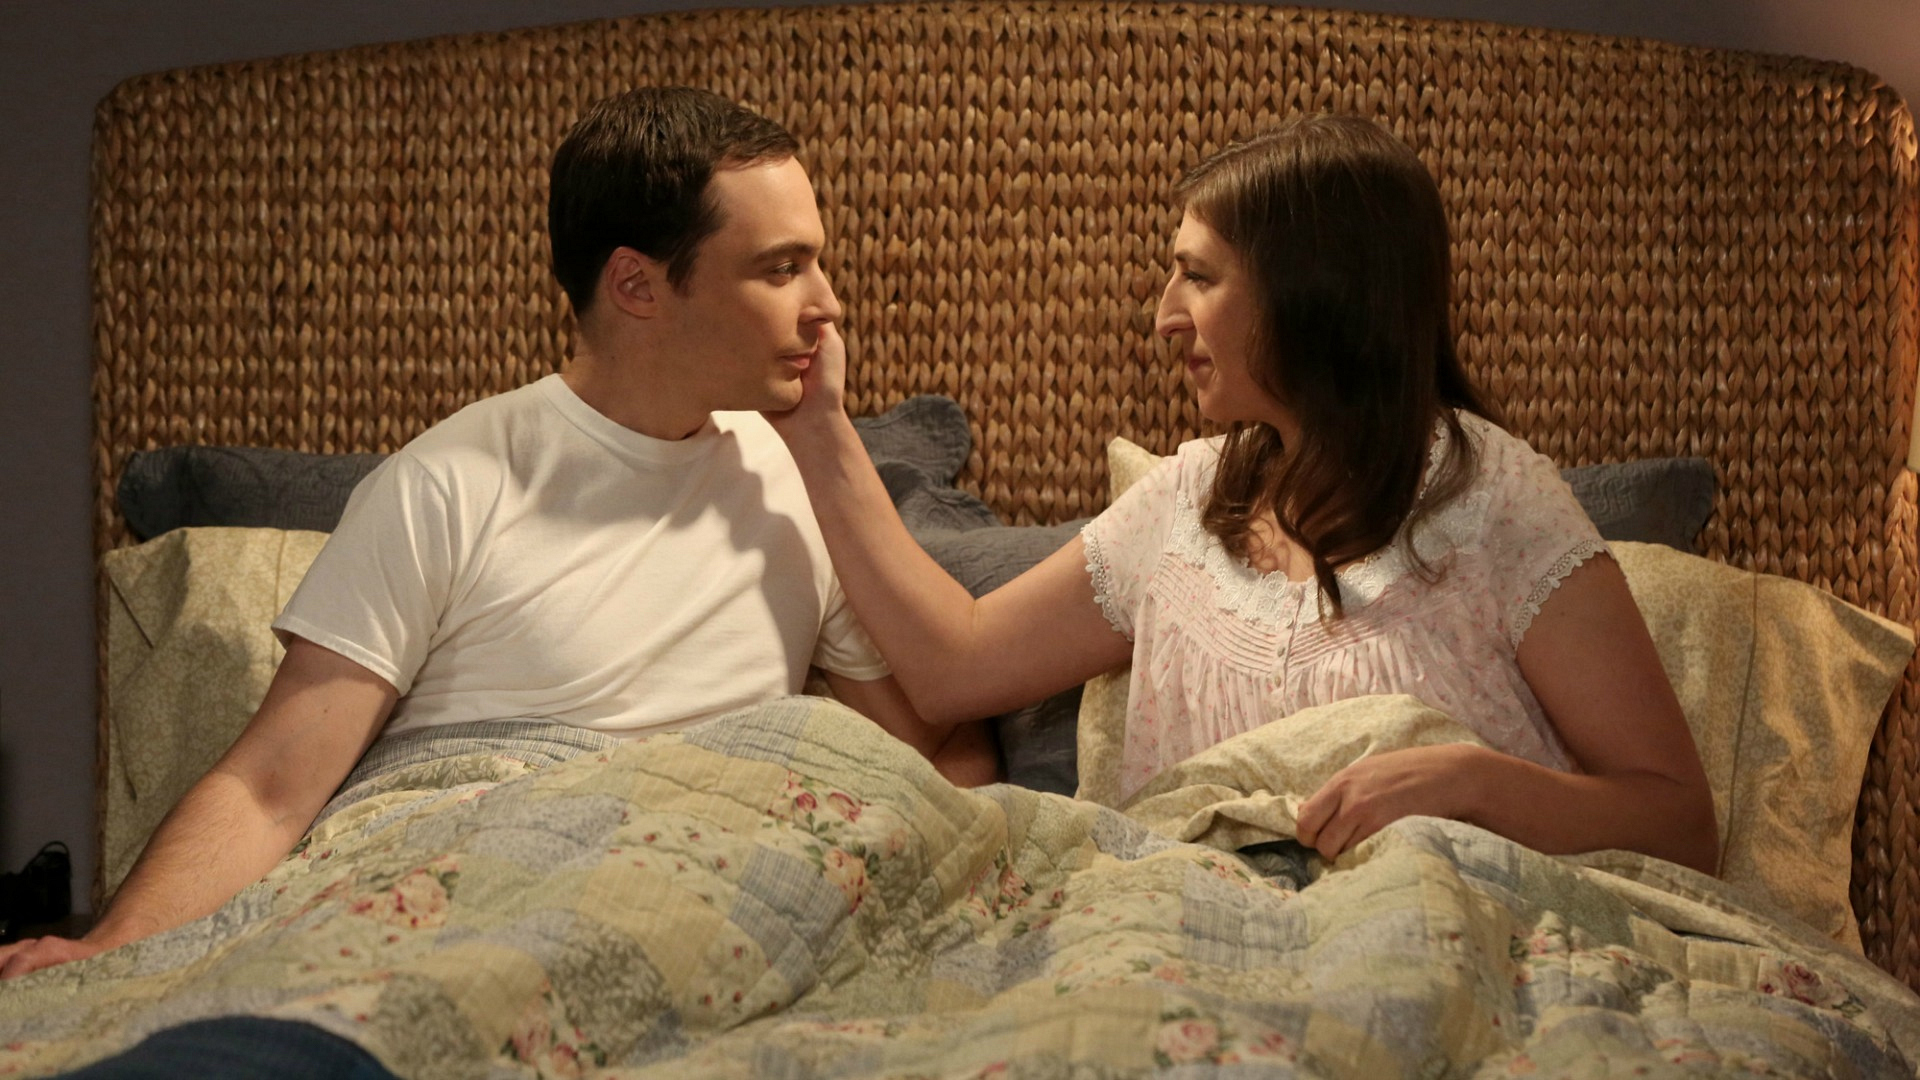 7. We cried when Sheldon and Amy decided to be more intimate with each other